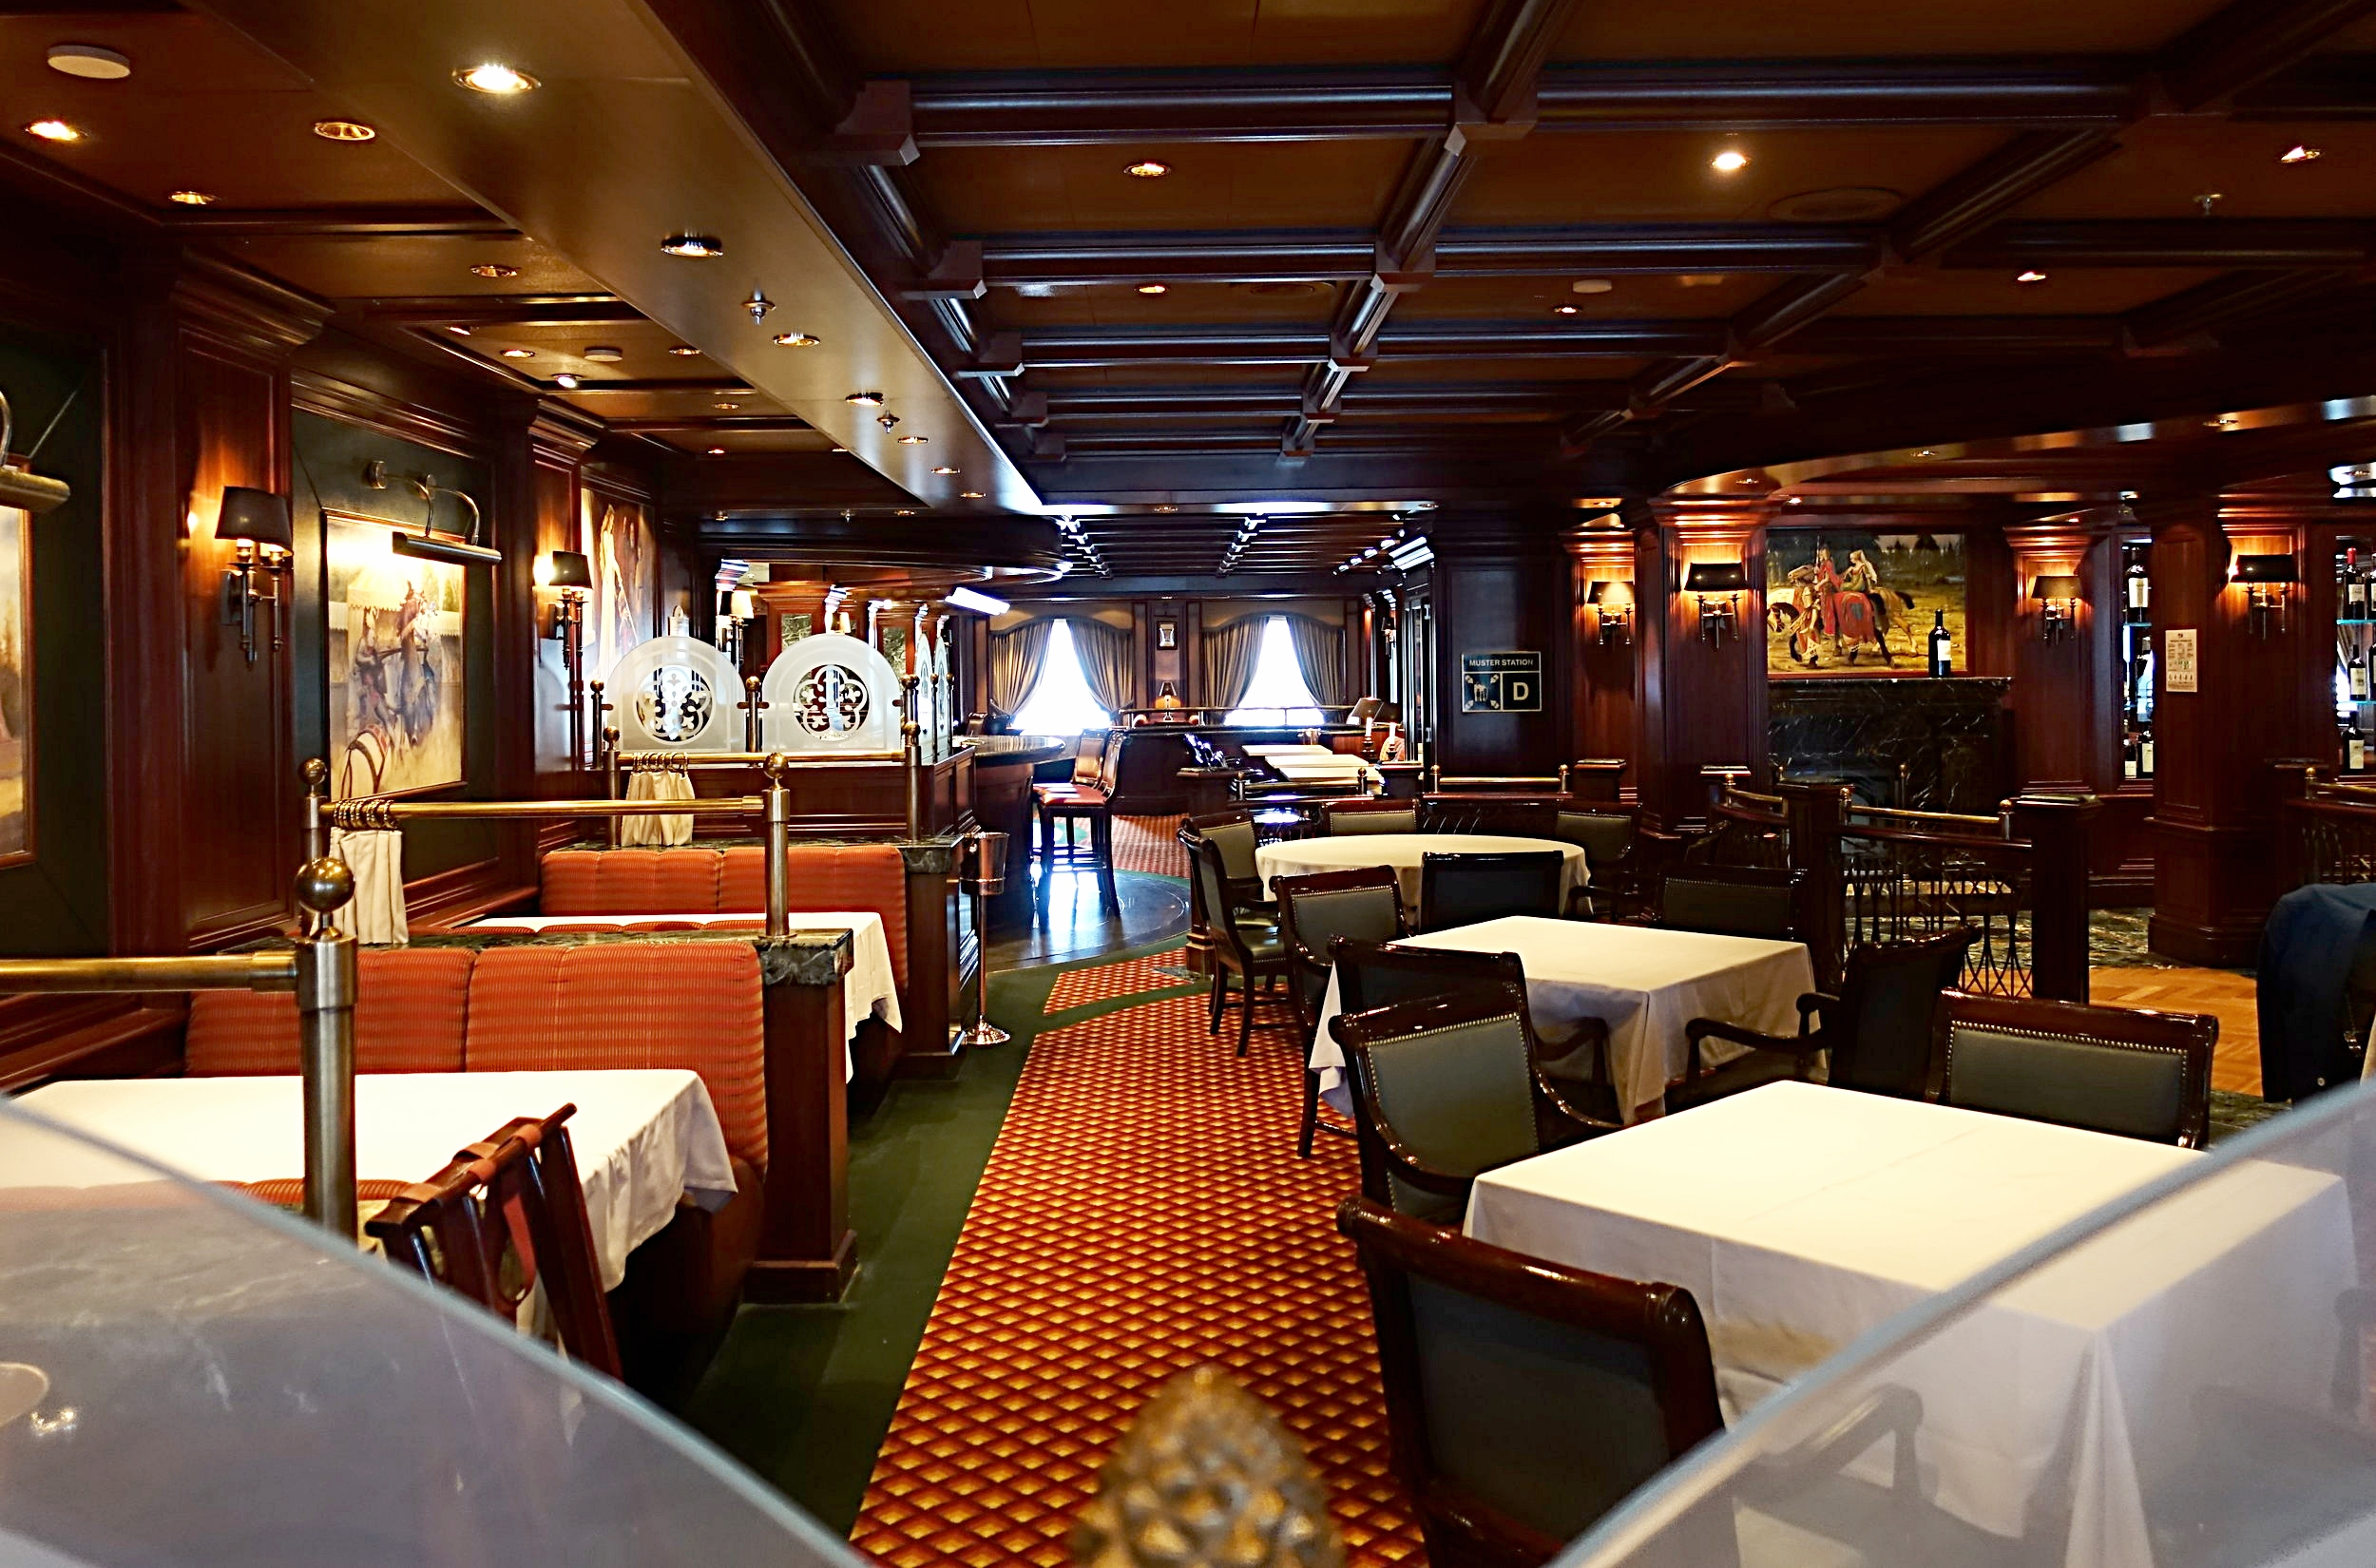 The Crown Grill restaurant.